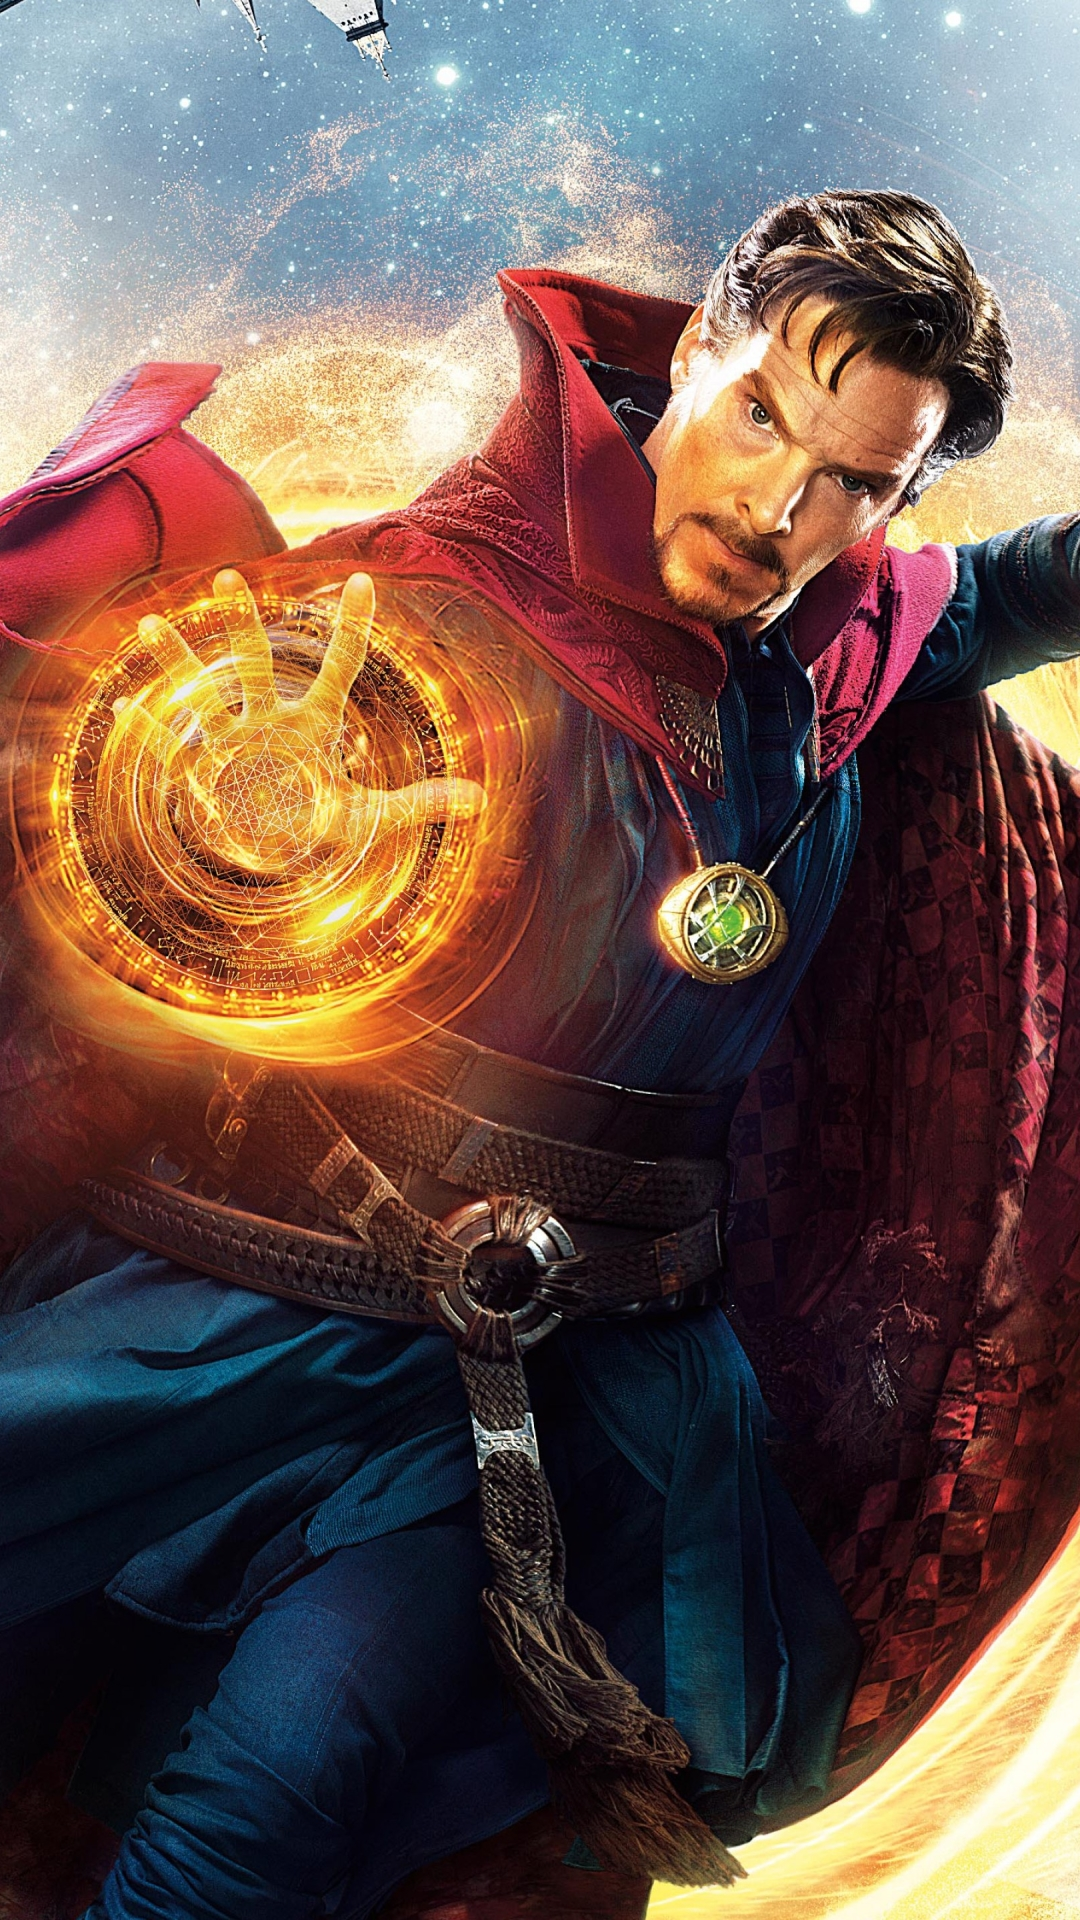 movie/doctor strange (1080x1920) wallpaper id: 649676 - mobile abyss